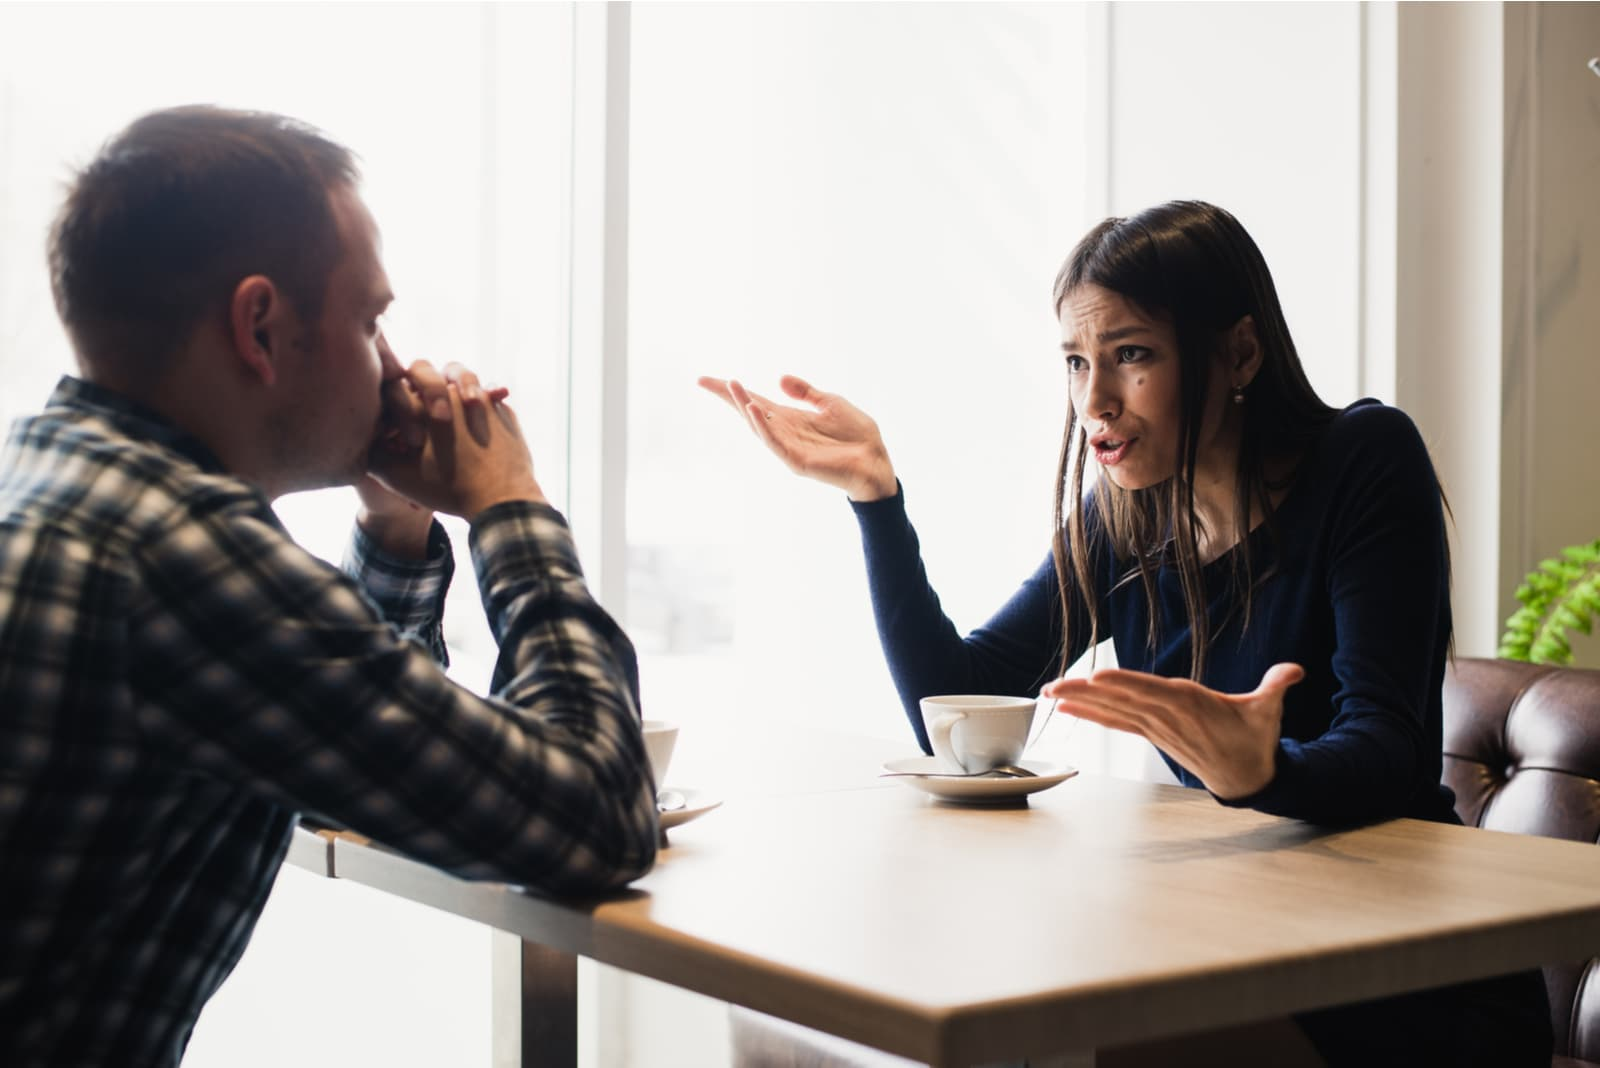 angry woman talking to man at cafe